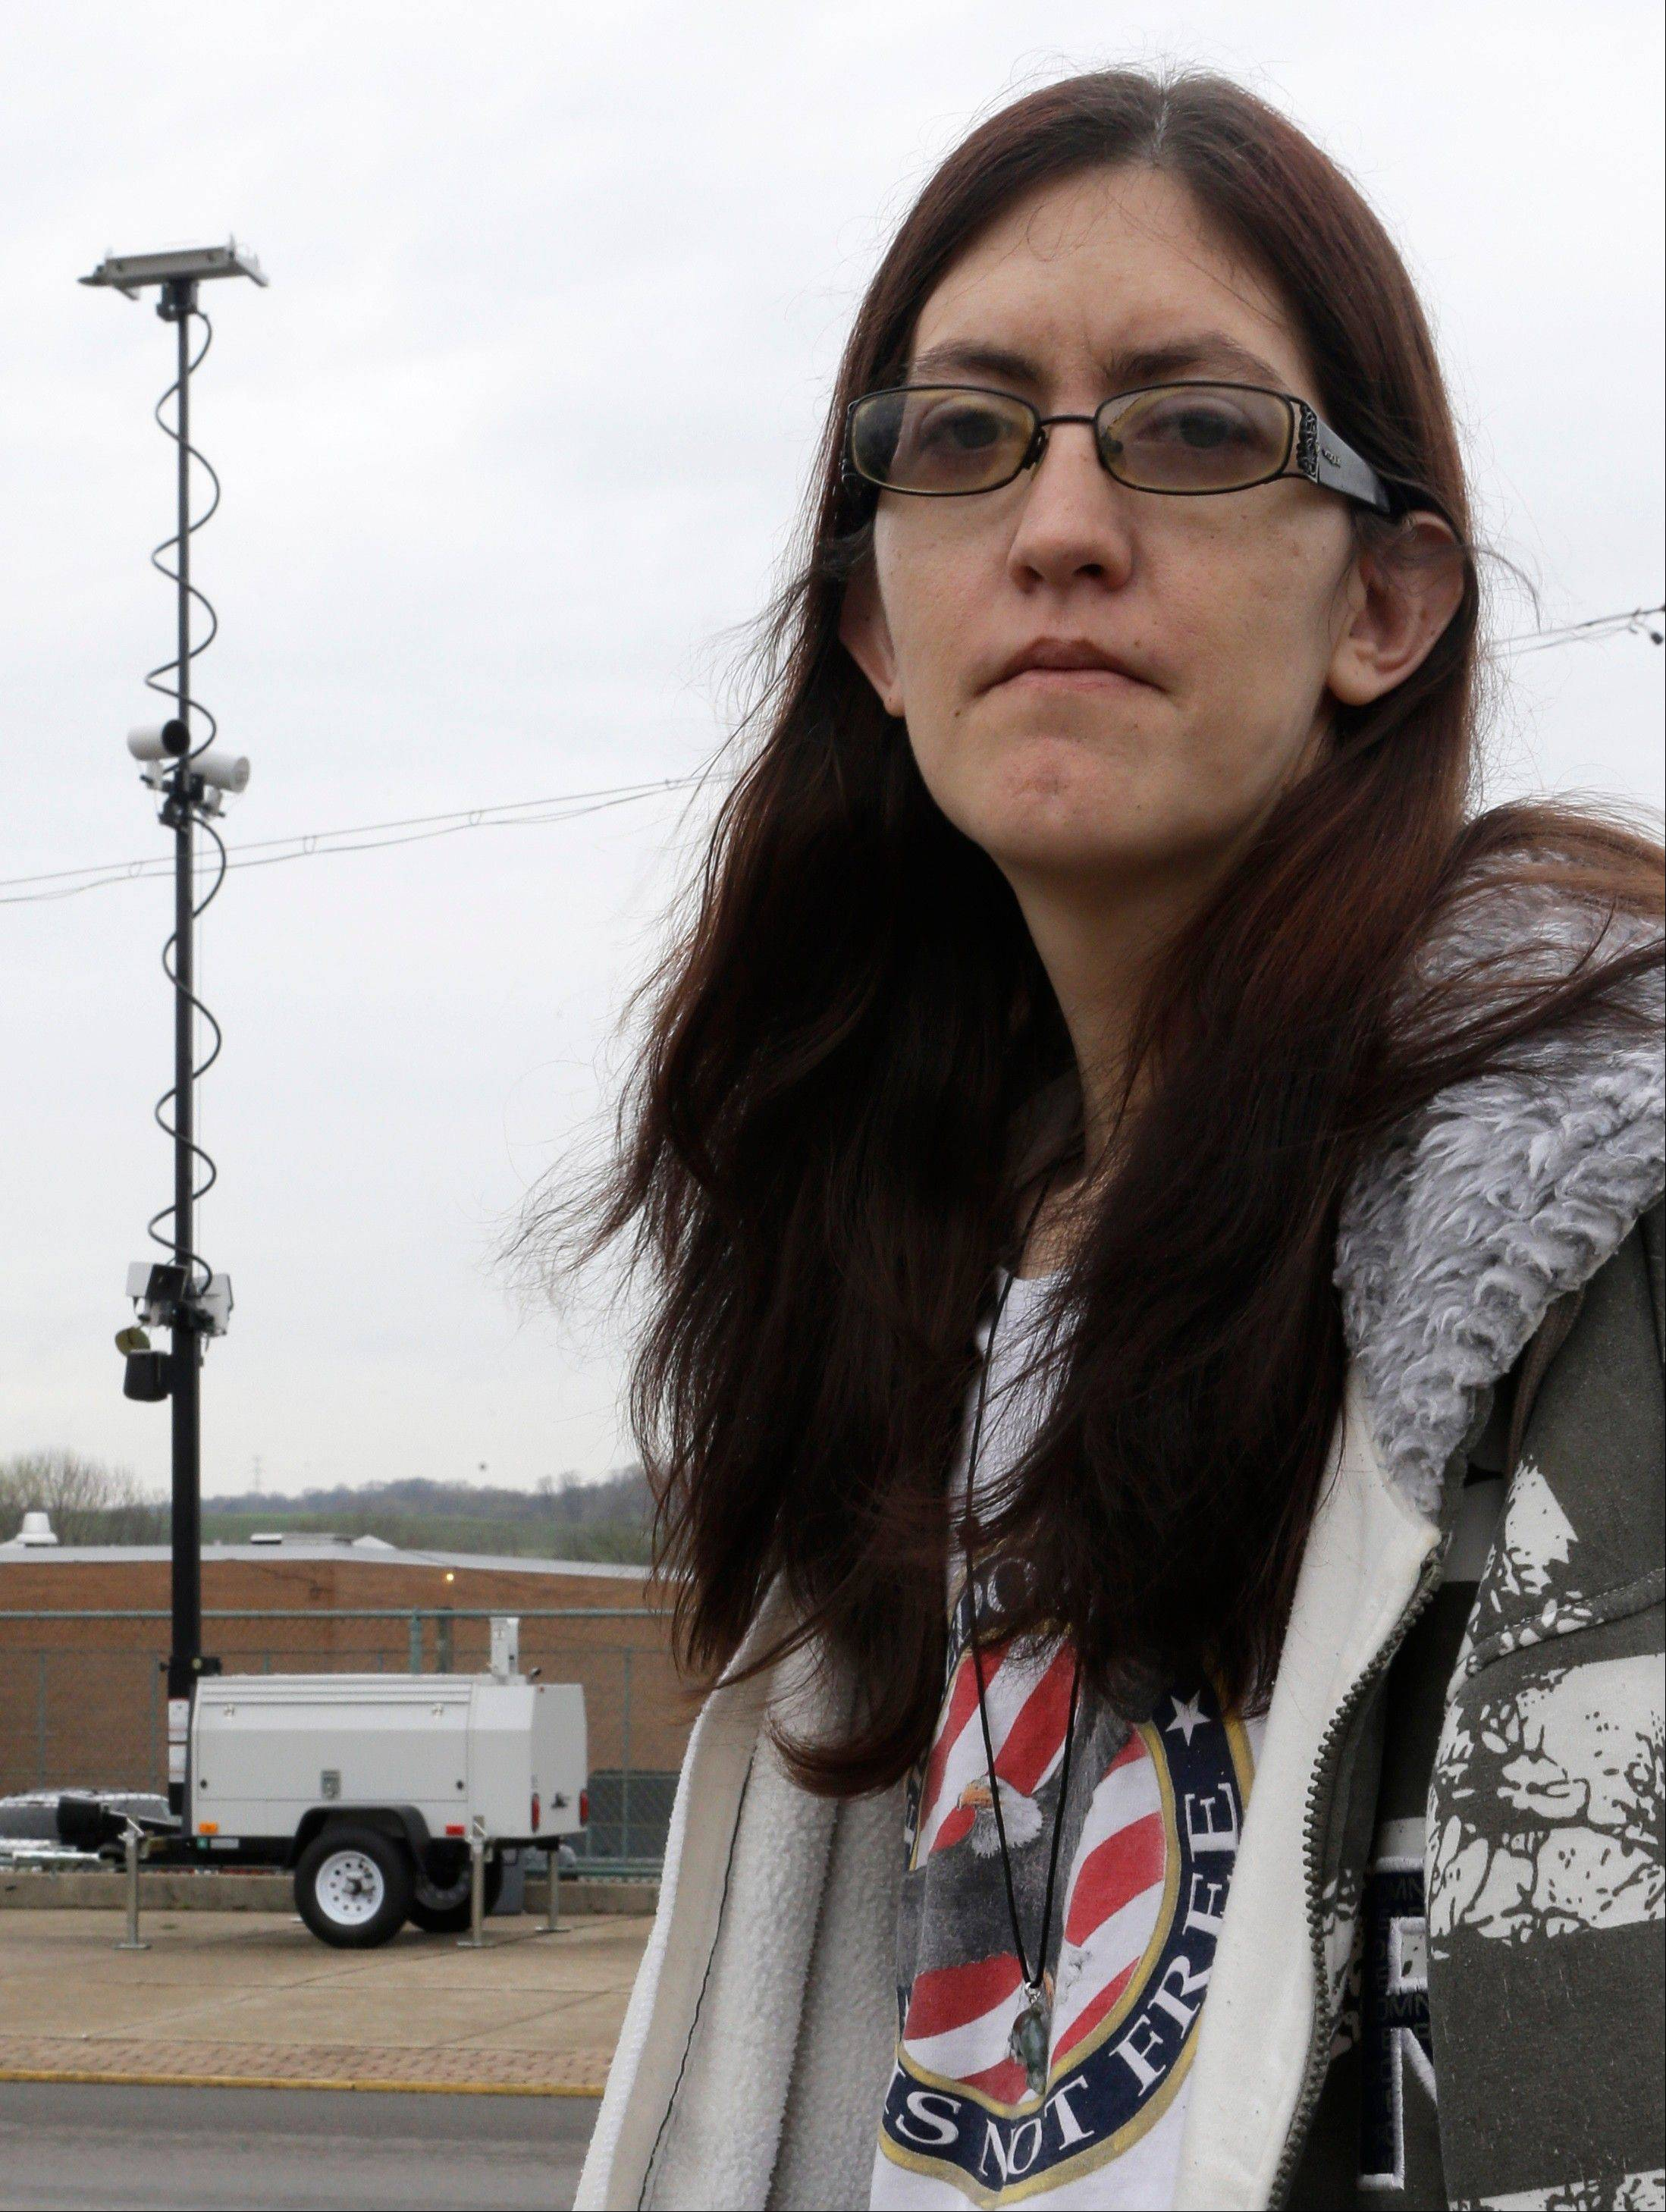 Holly Calhoun stands across the street from a tower of speed cameras located near the Elmwood Quick Stop she manages, in Elmwood Place, Ohio. Calhoun doesn't believe the speed cameras installed in the village were about safety.